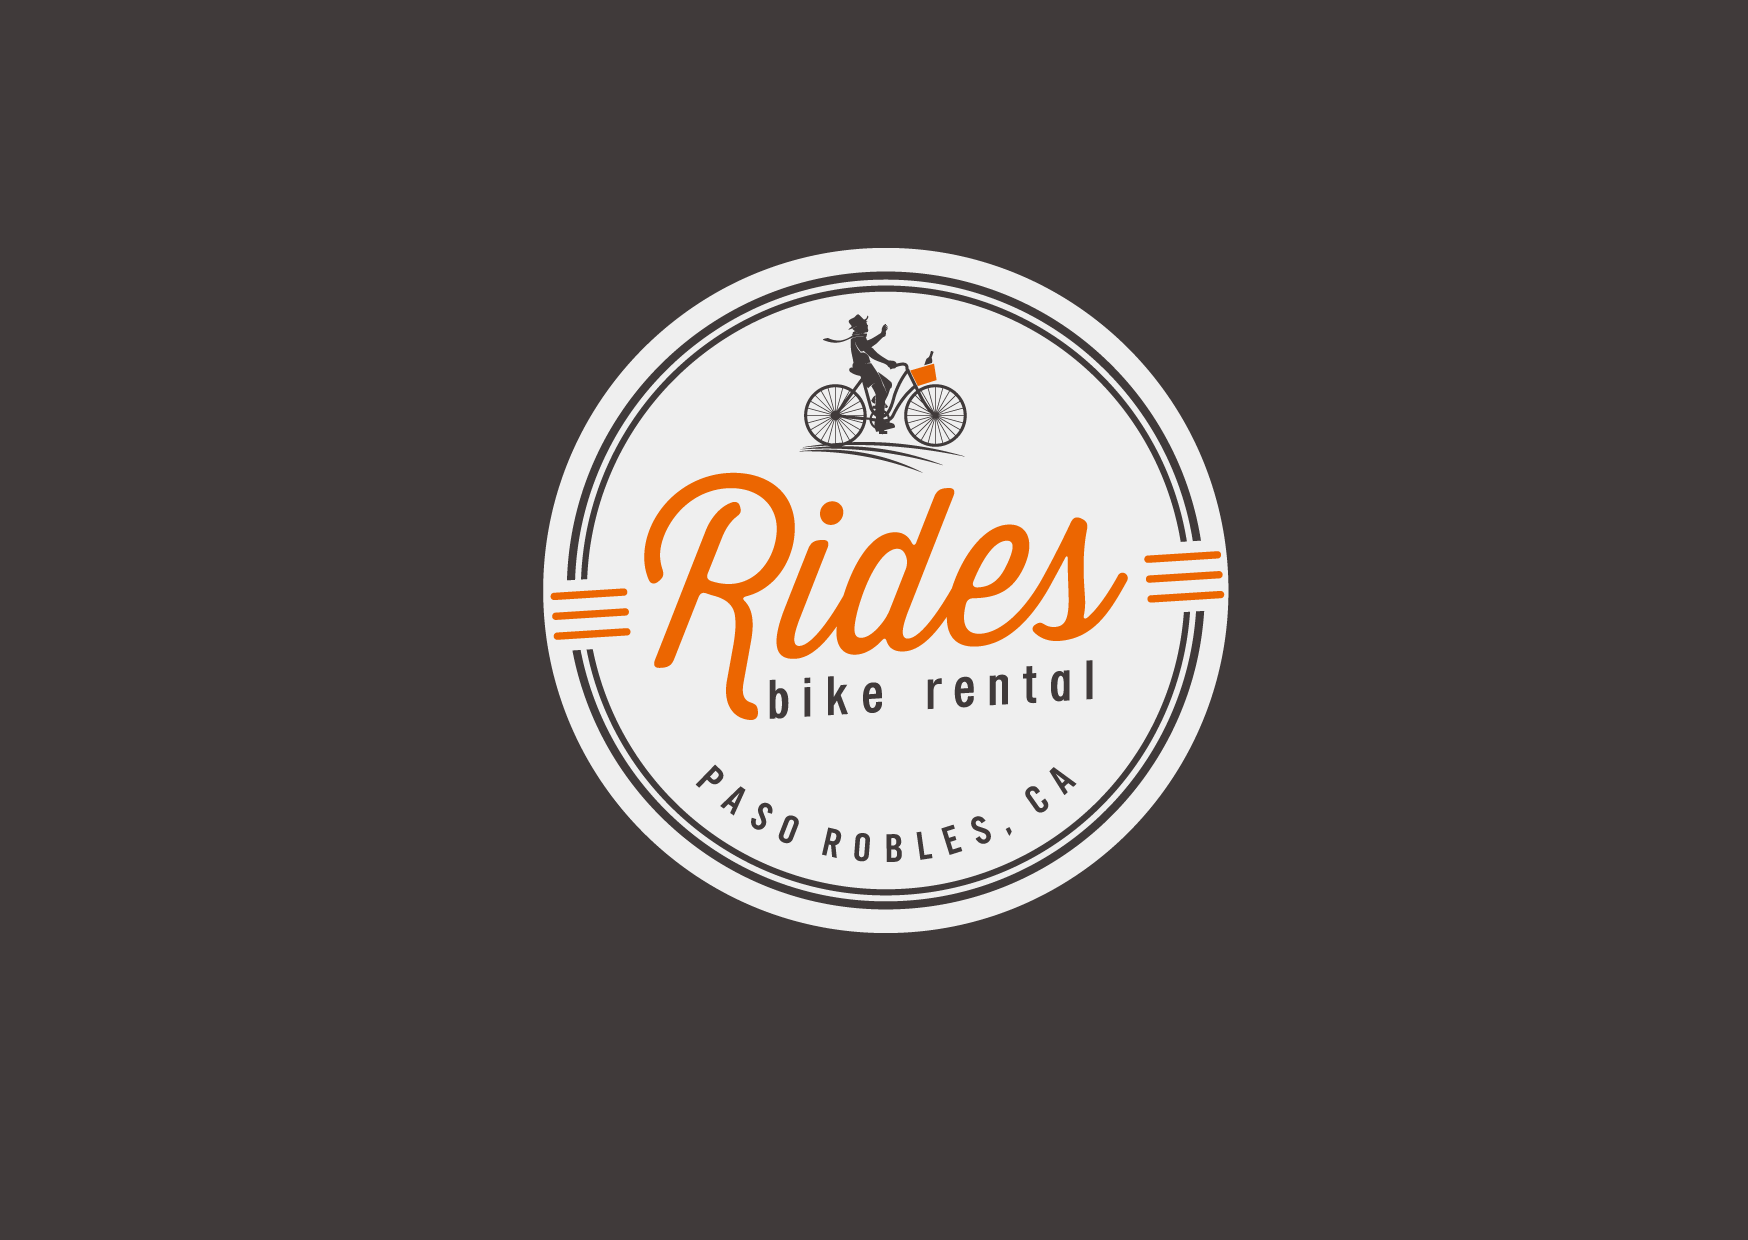 Rides - Authentic California Central Coast Lifestyle, Wine Country Bike Rental Tours